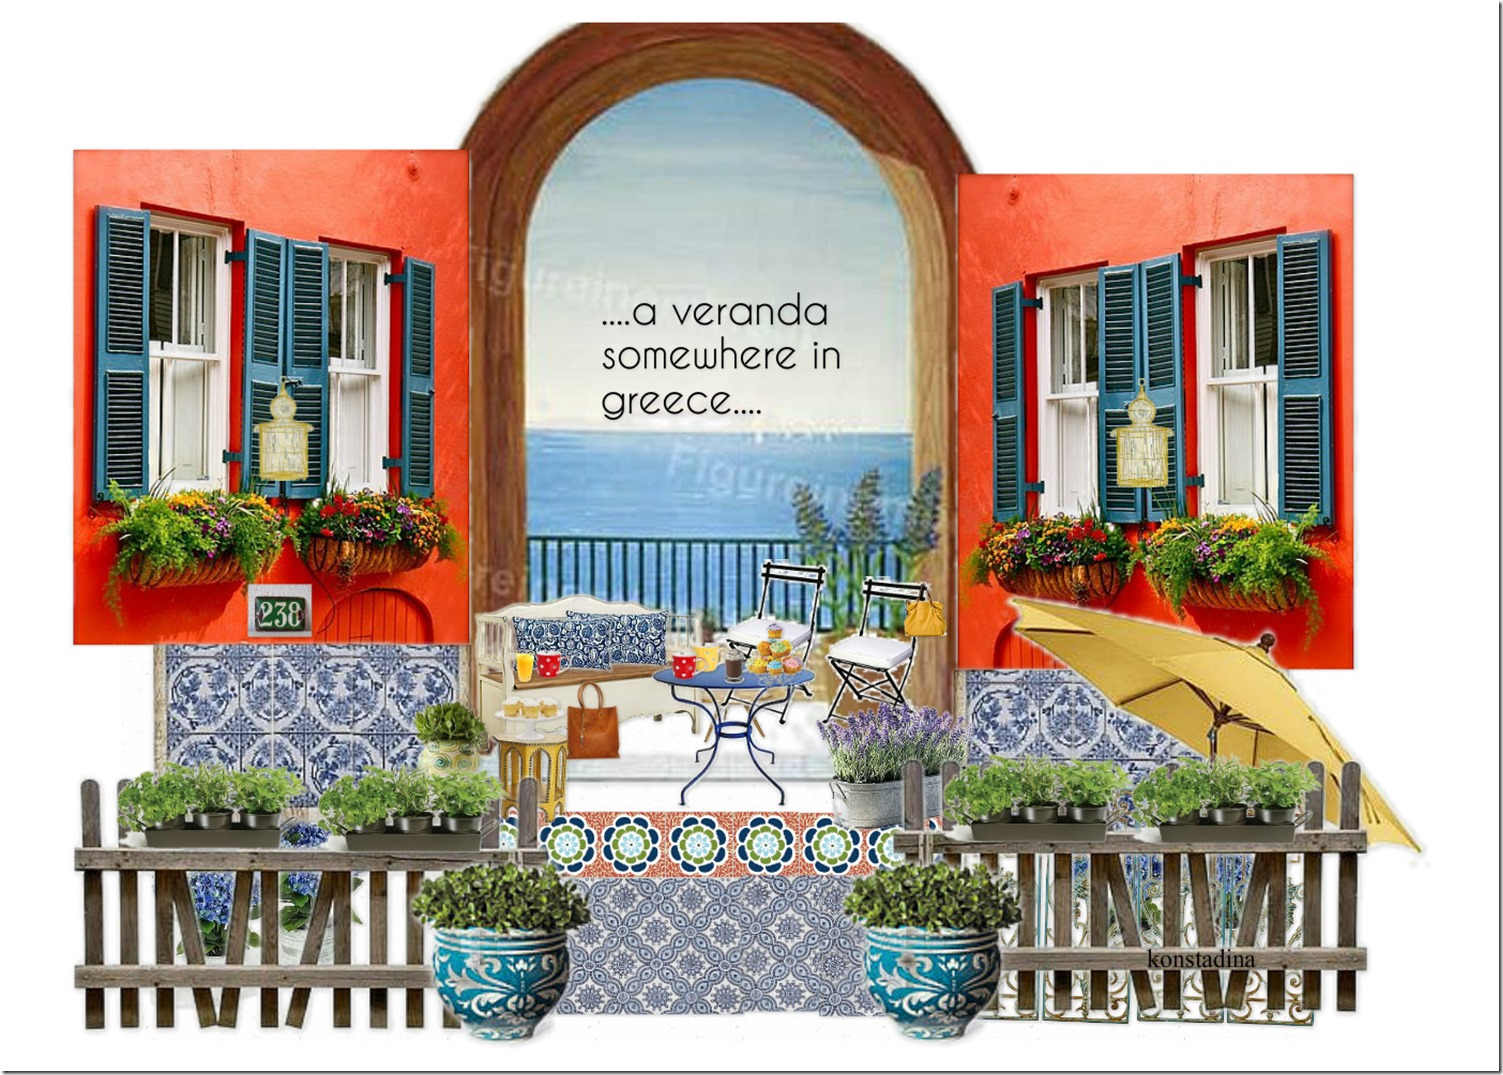 design board: veranda, outdoors Greece -konstadina nastou- {.k.} blog, Κωνσταντίνα Νάστου